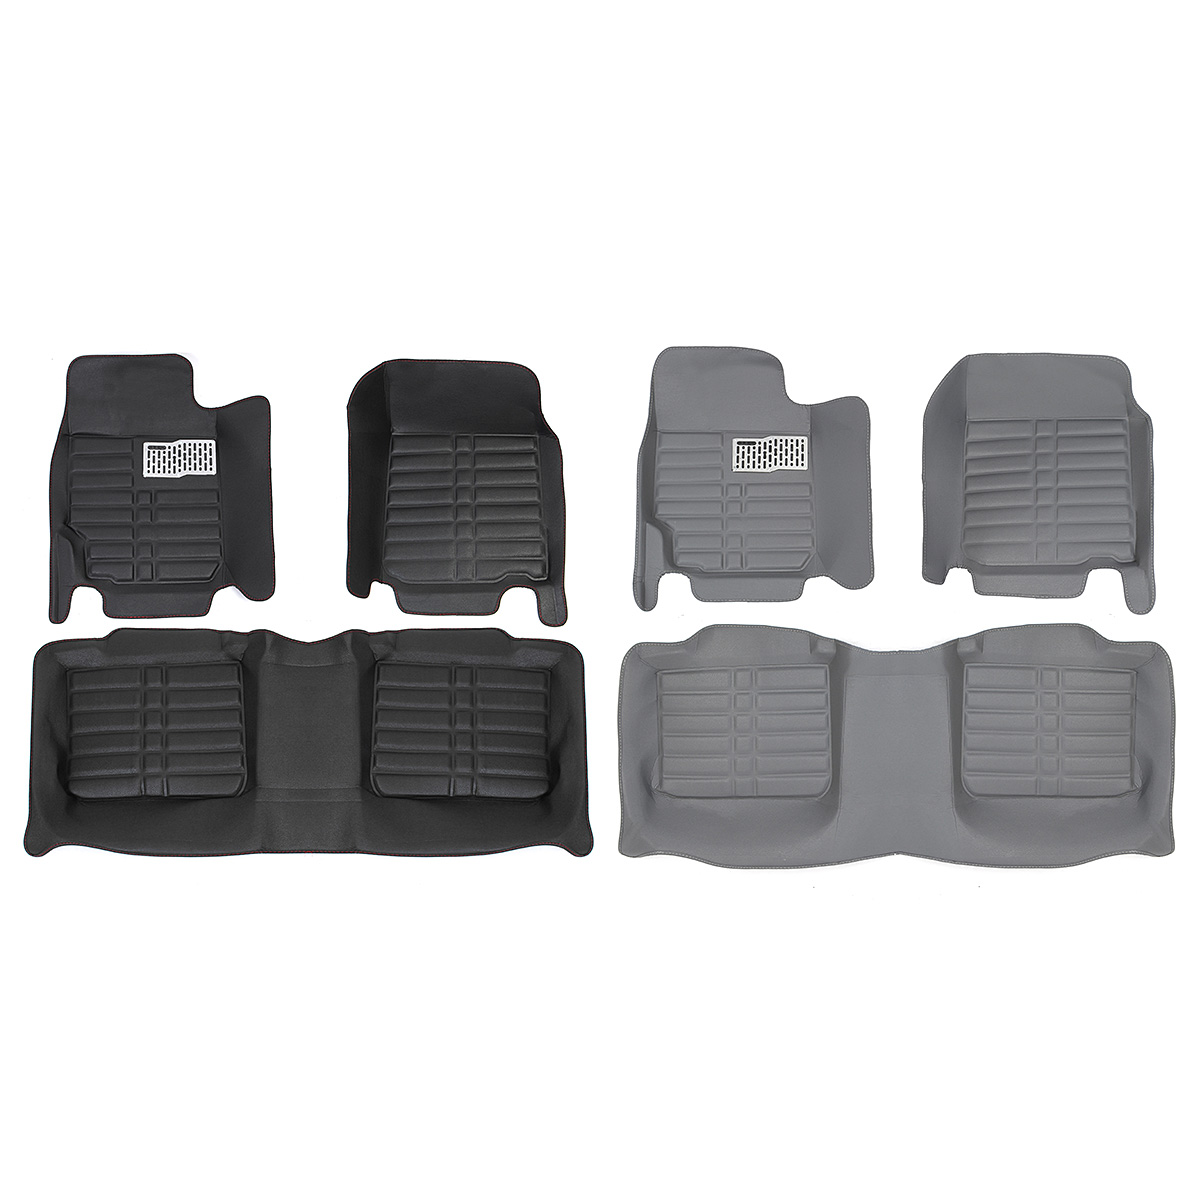 3Pcs PU Leather Black Gray Car Front + Rear Leather Liner Floor Mat Waterproof Decoration Mat Carpet For Toyota CAMRY 2006-2011 customs 5 seats 1 set car floor mat leather waterproof front